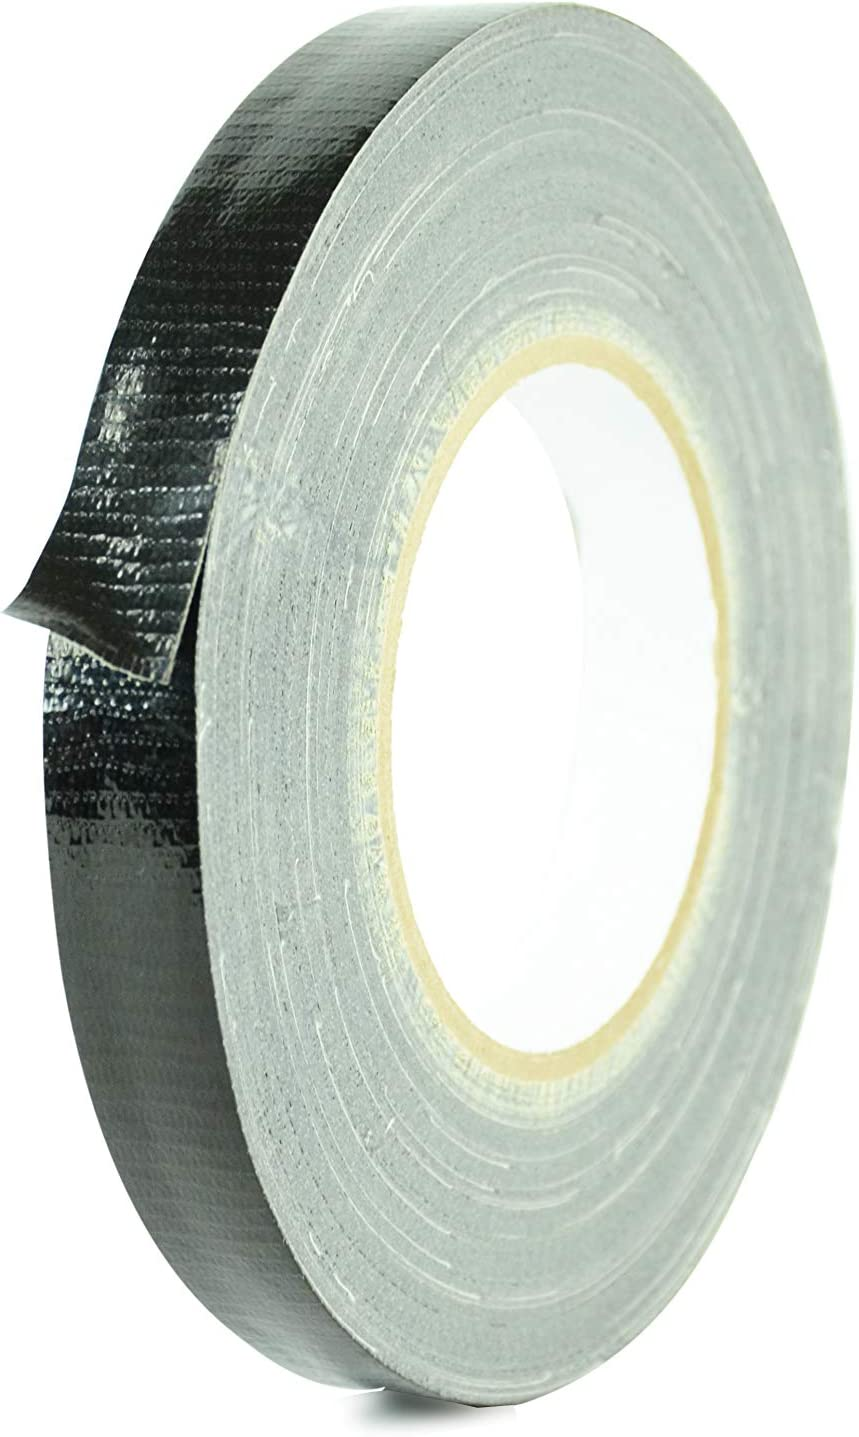 MAT Duct Tape Black Industrial Grade, 1 inch x 60 yds. Waterproof, UV Resistant for Crafts, Home Improvement, Repairs, Projects